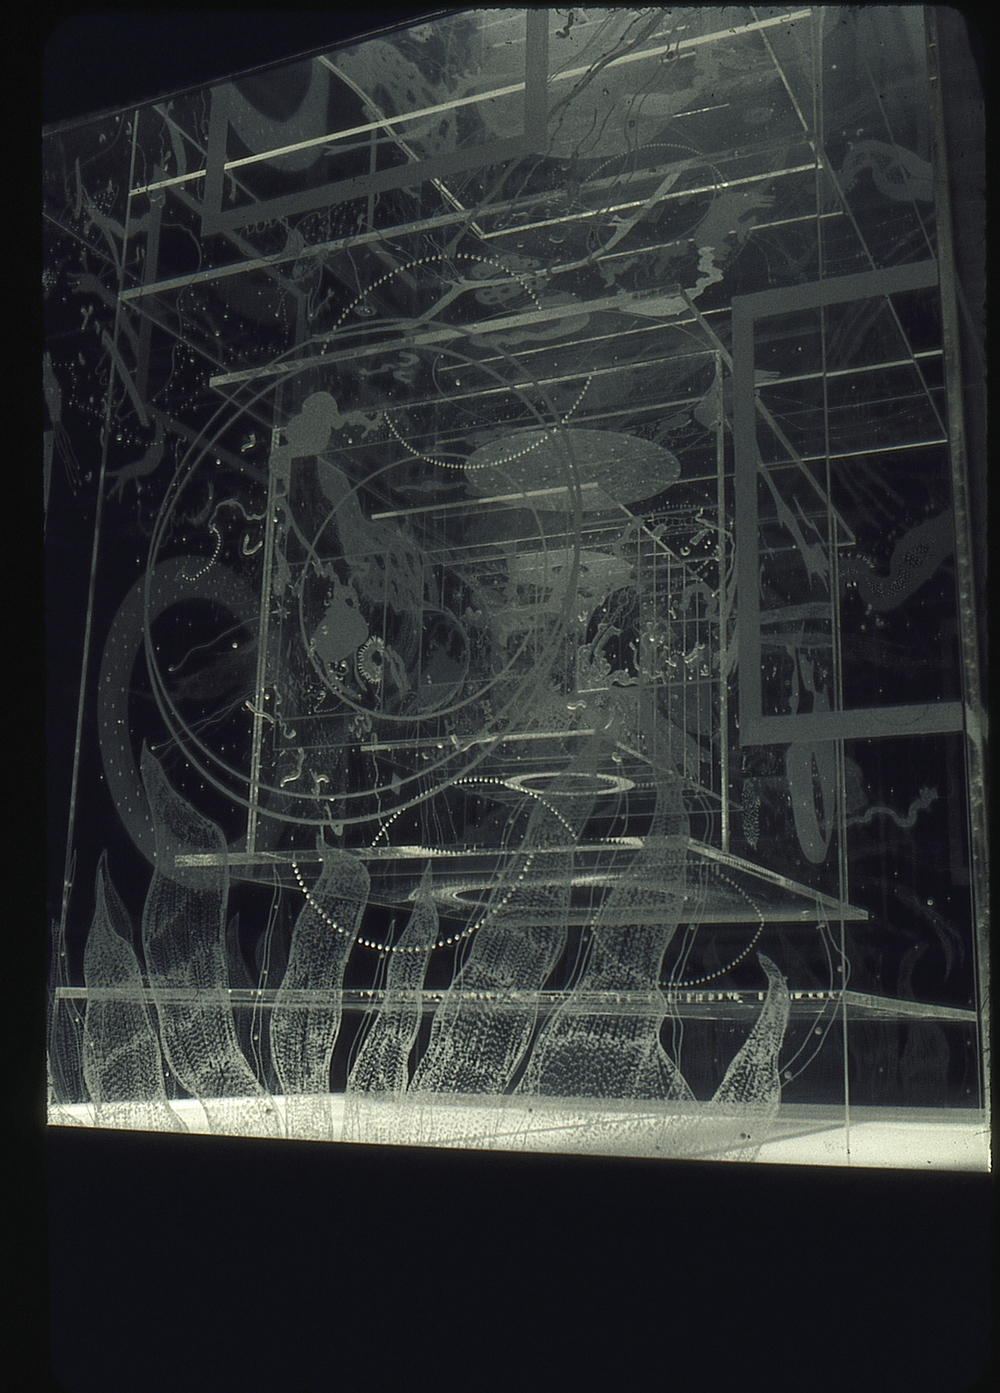 """Worlds within worlds: Anti-worlds,"" 1985 Engraved, lighted 3-drawing assemblage 8' x 4' x 4' plexiglas and glass"